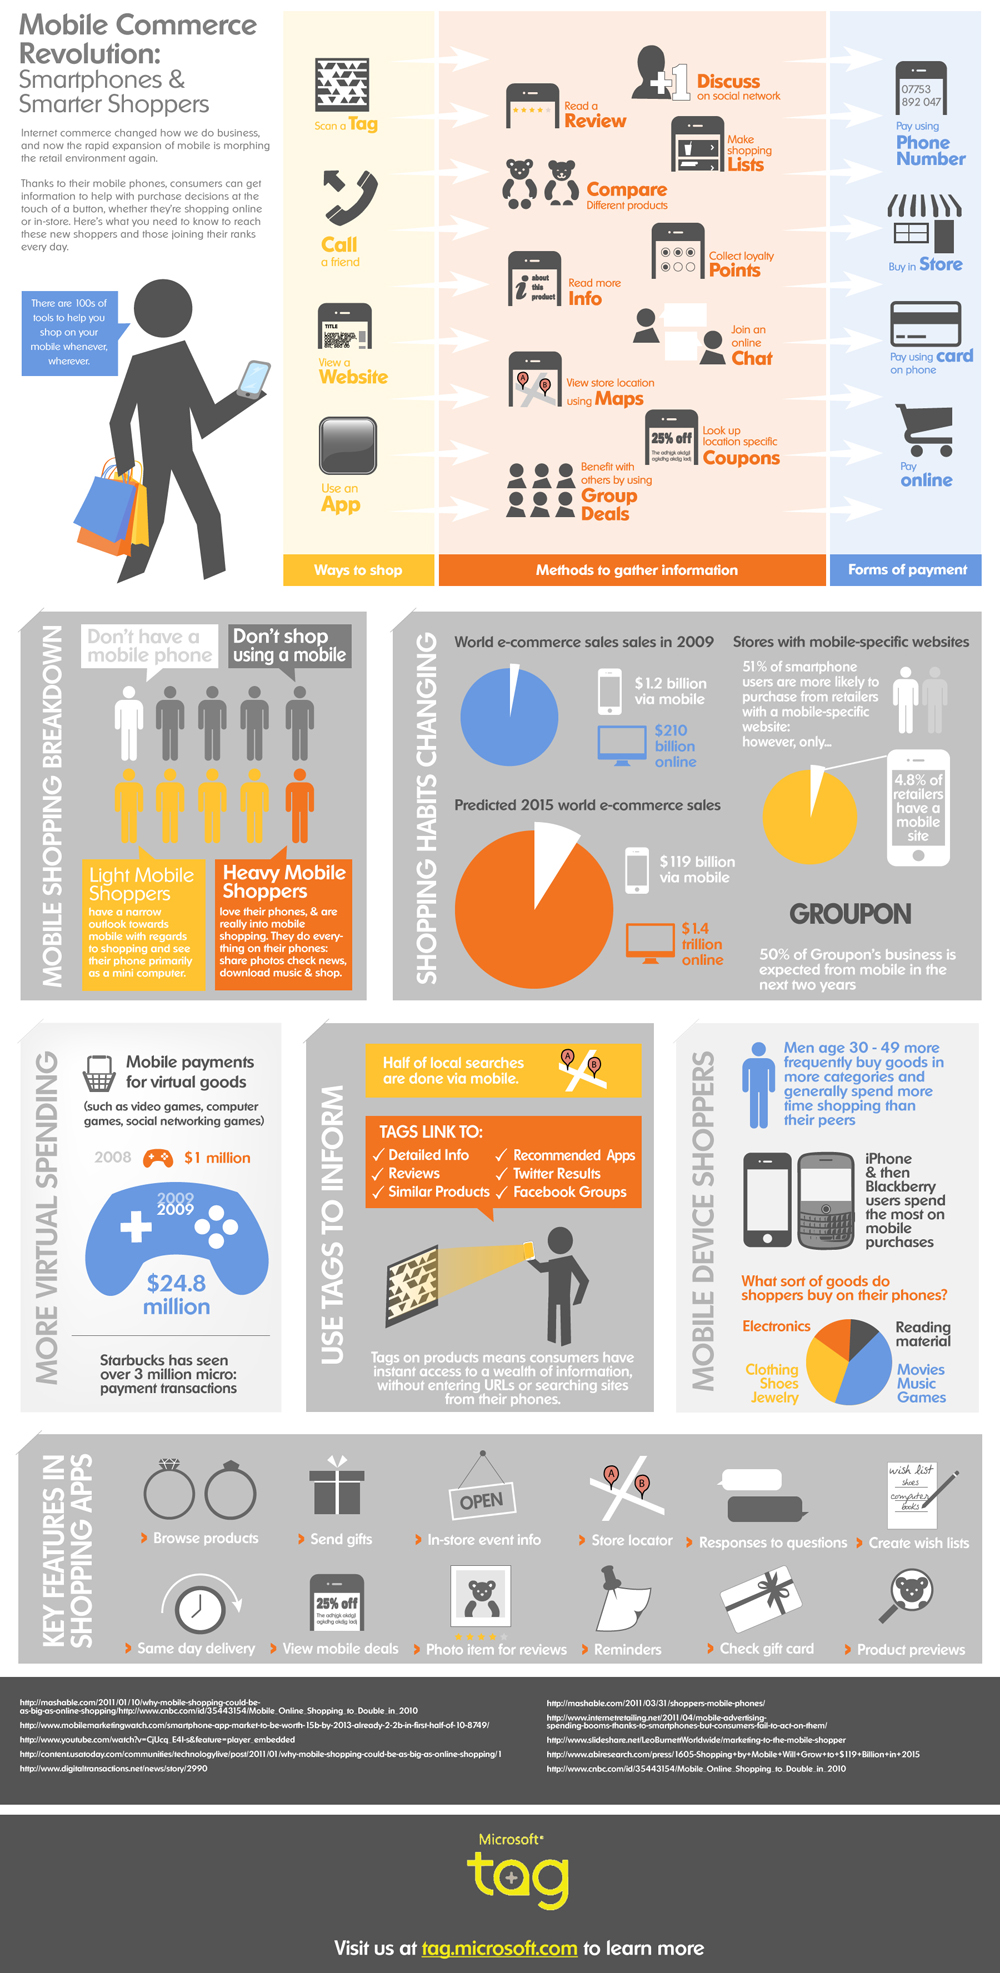 via psfk.com Great infographic by Microsoft. I wonder when retailers will break out of their rut and start moving forward faster.